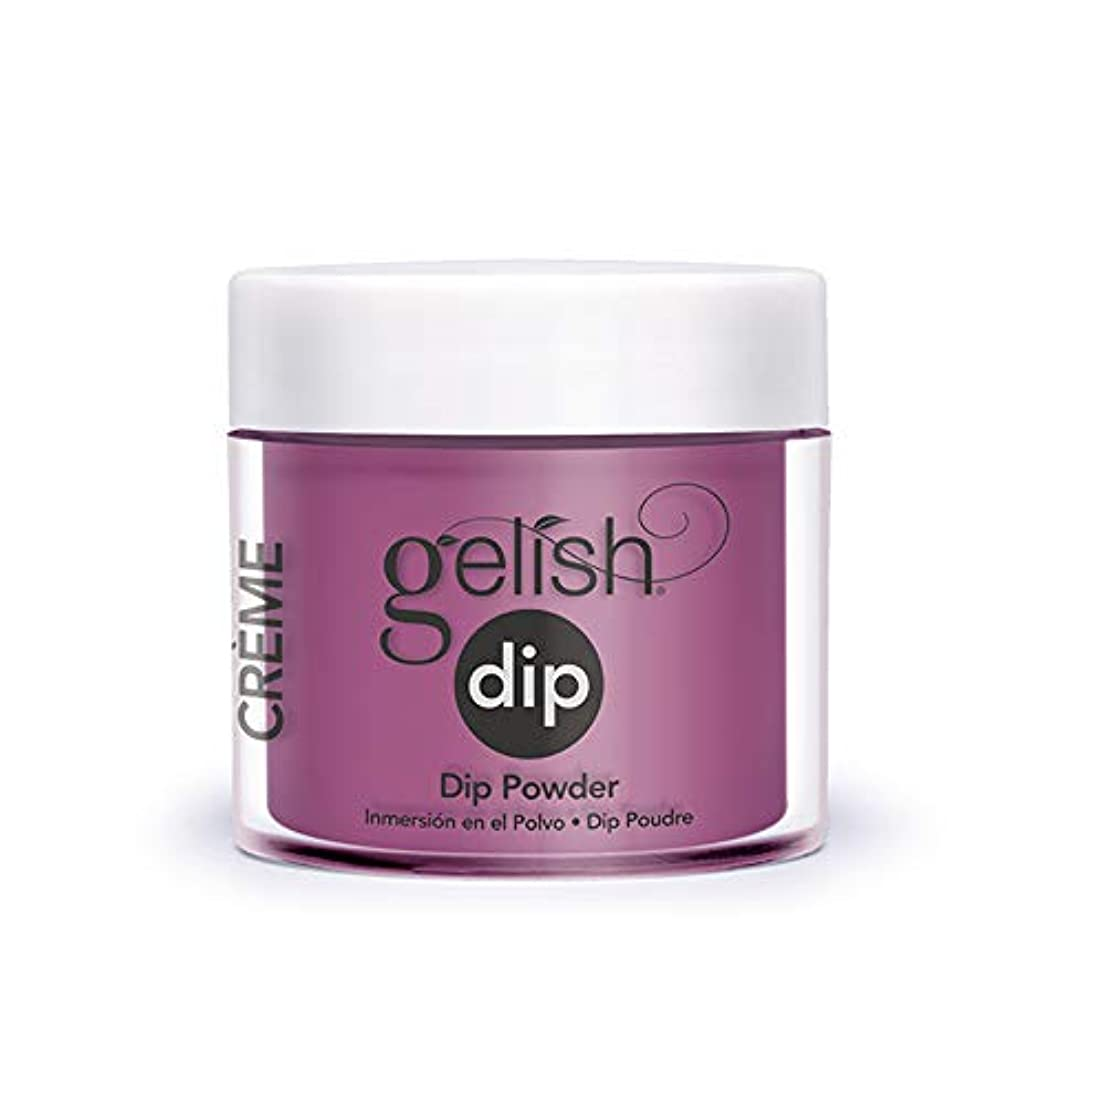 ポインタ葉を集める原点Harmony Gelish - Acrylic Dip Powder - Plum and Done - 23g / 0.8oz